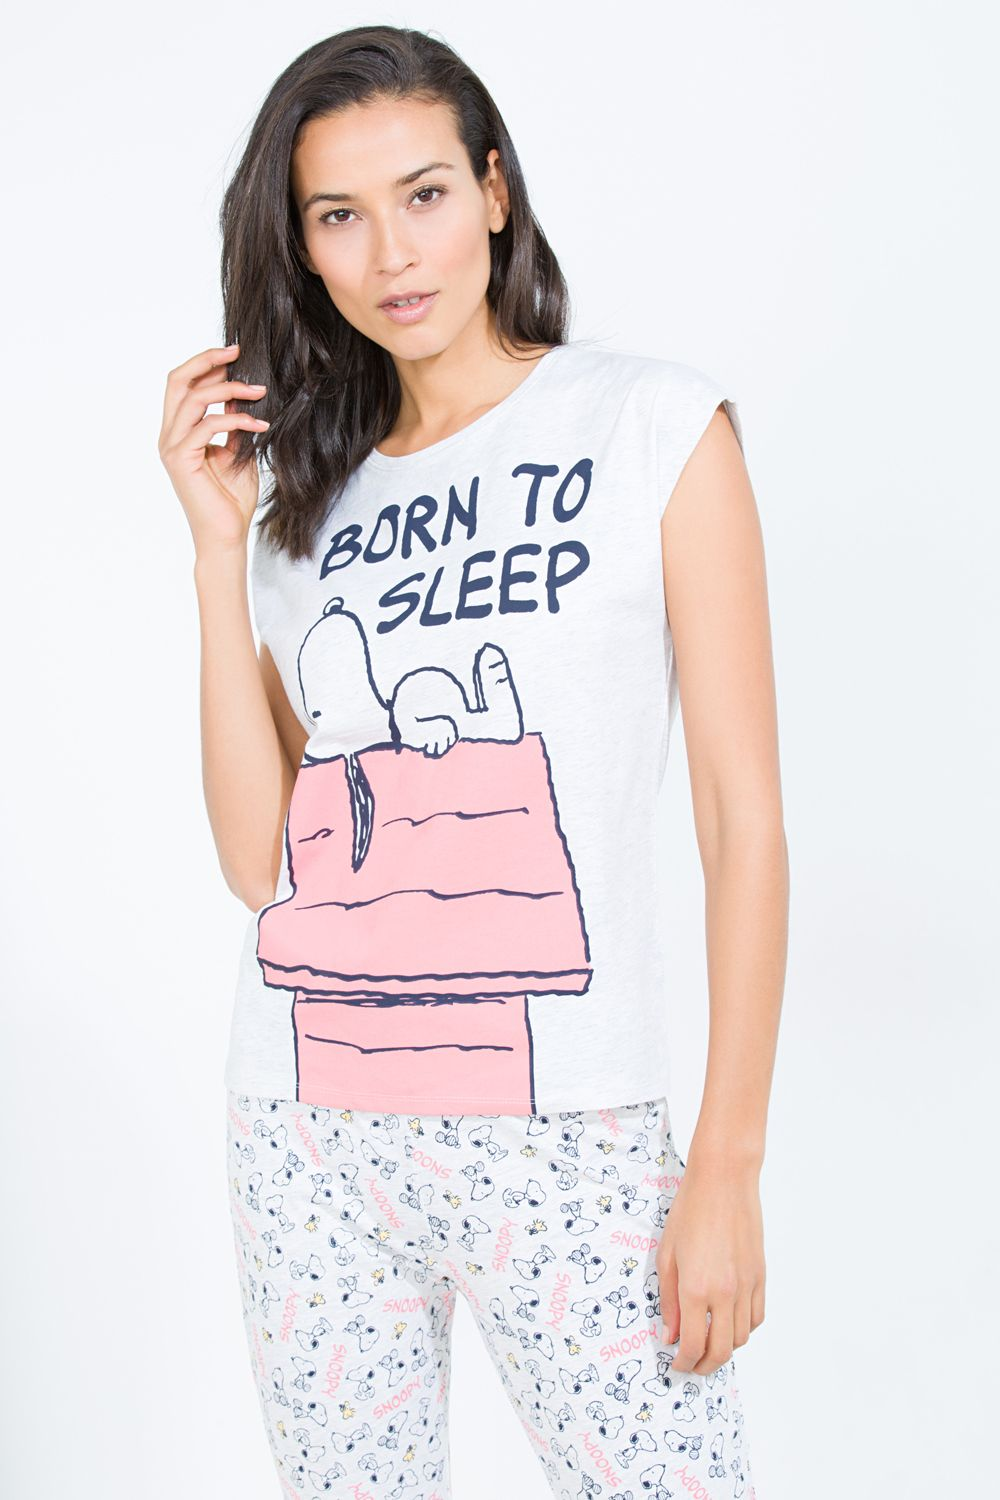 ffe840daa2d57 Women'secret - Long 'Born to Sleep' Snoopy pyjama | LADIES LICENSED ...